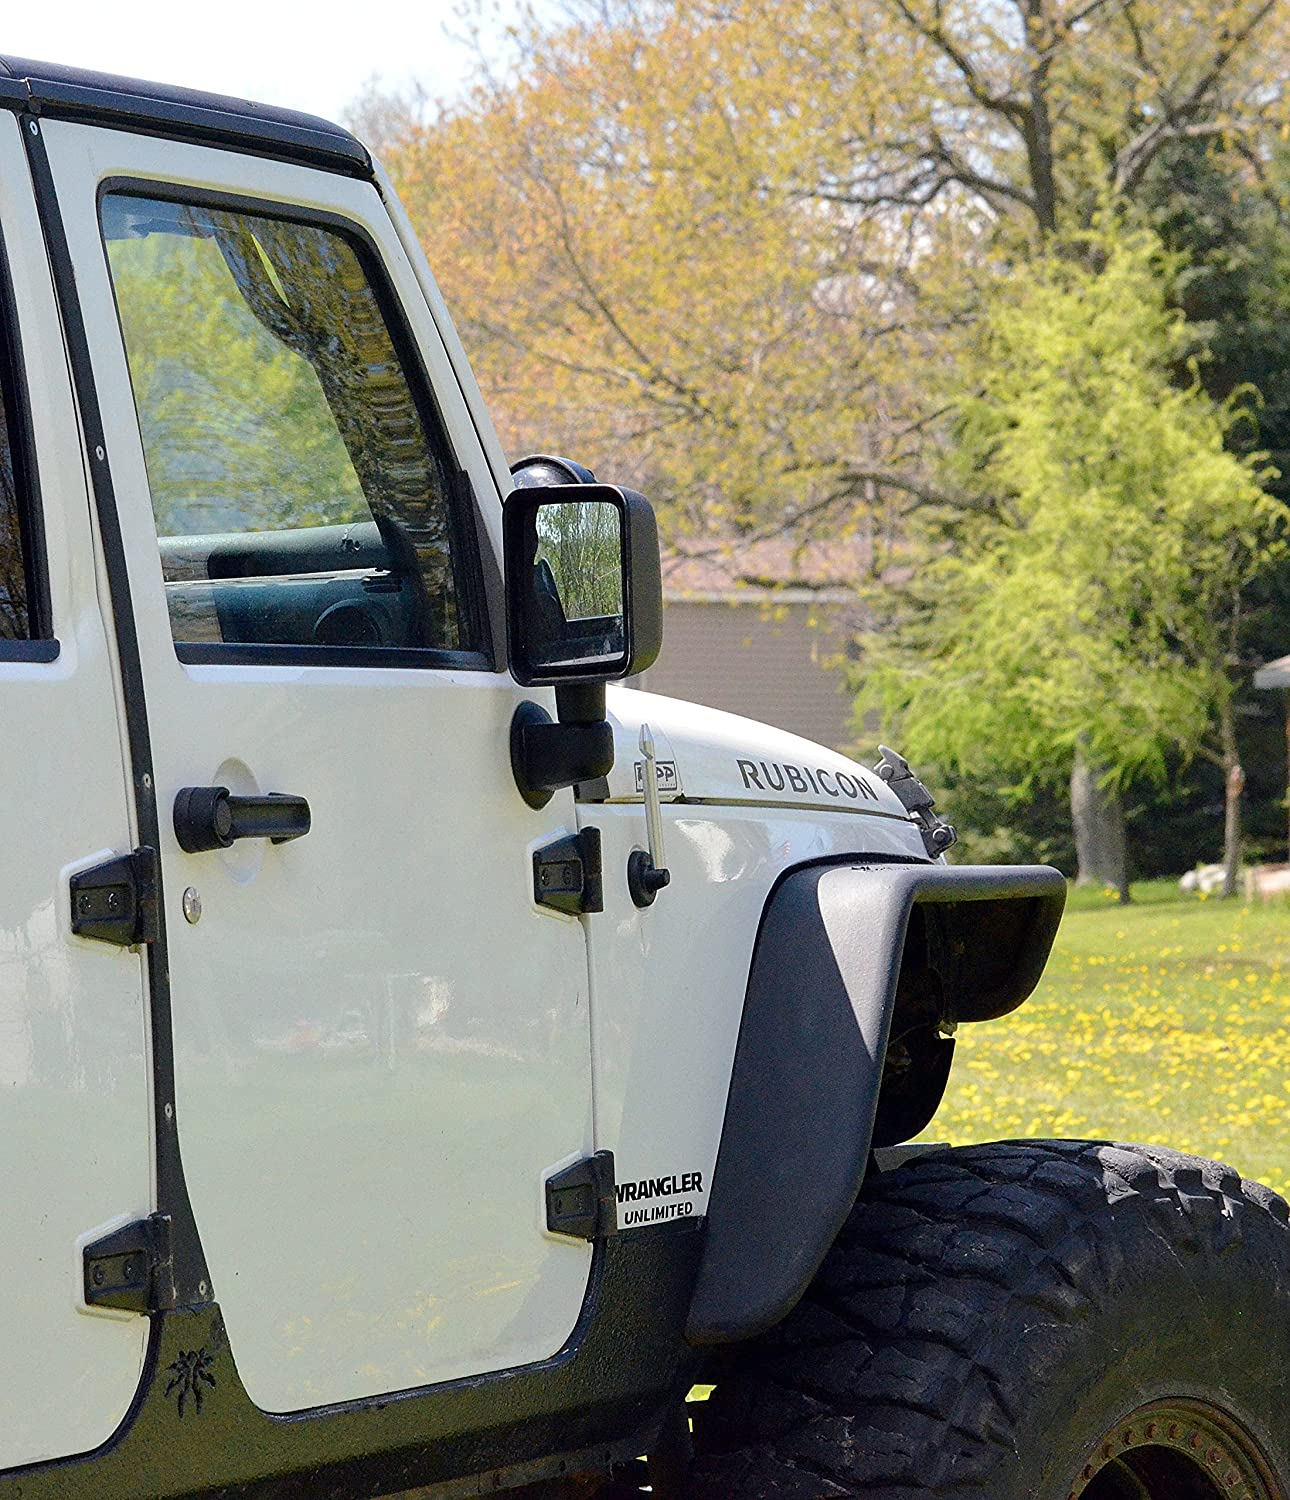 2003-2009 AntennaMastsRus Made in USA 4 Black Aluminum Fender is Compatible with Antenna Hummer H2